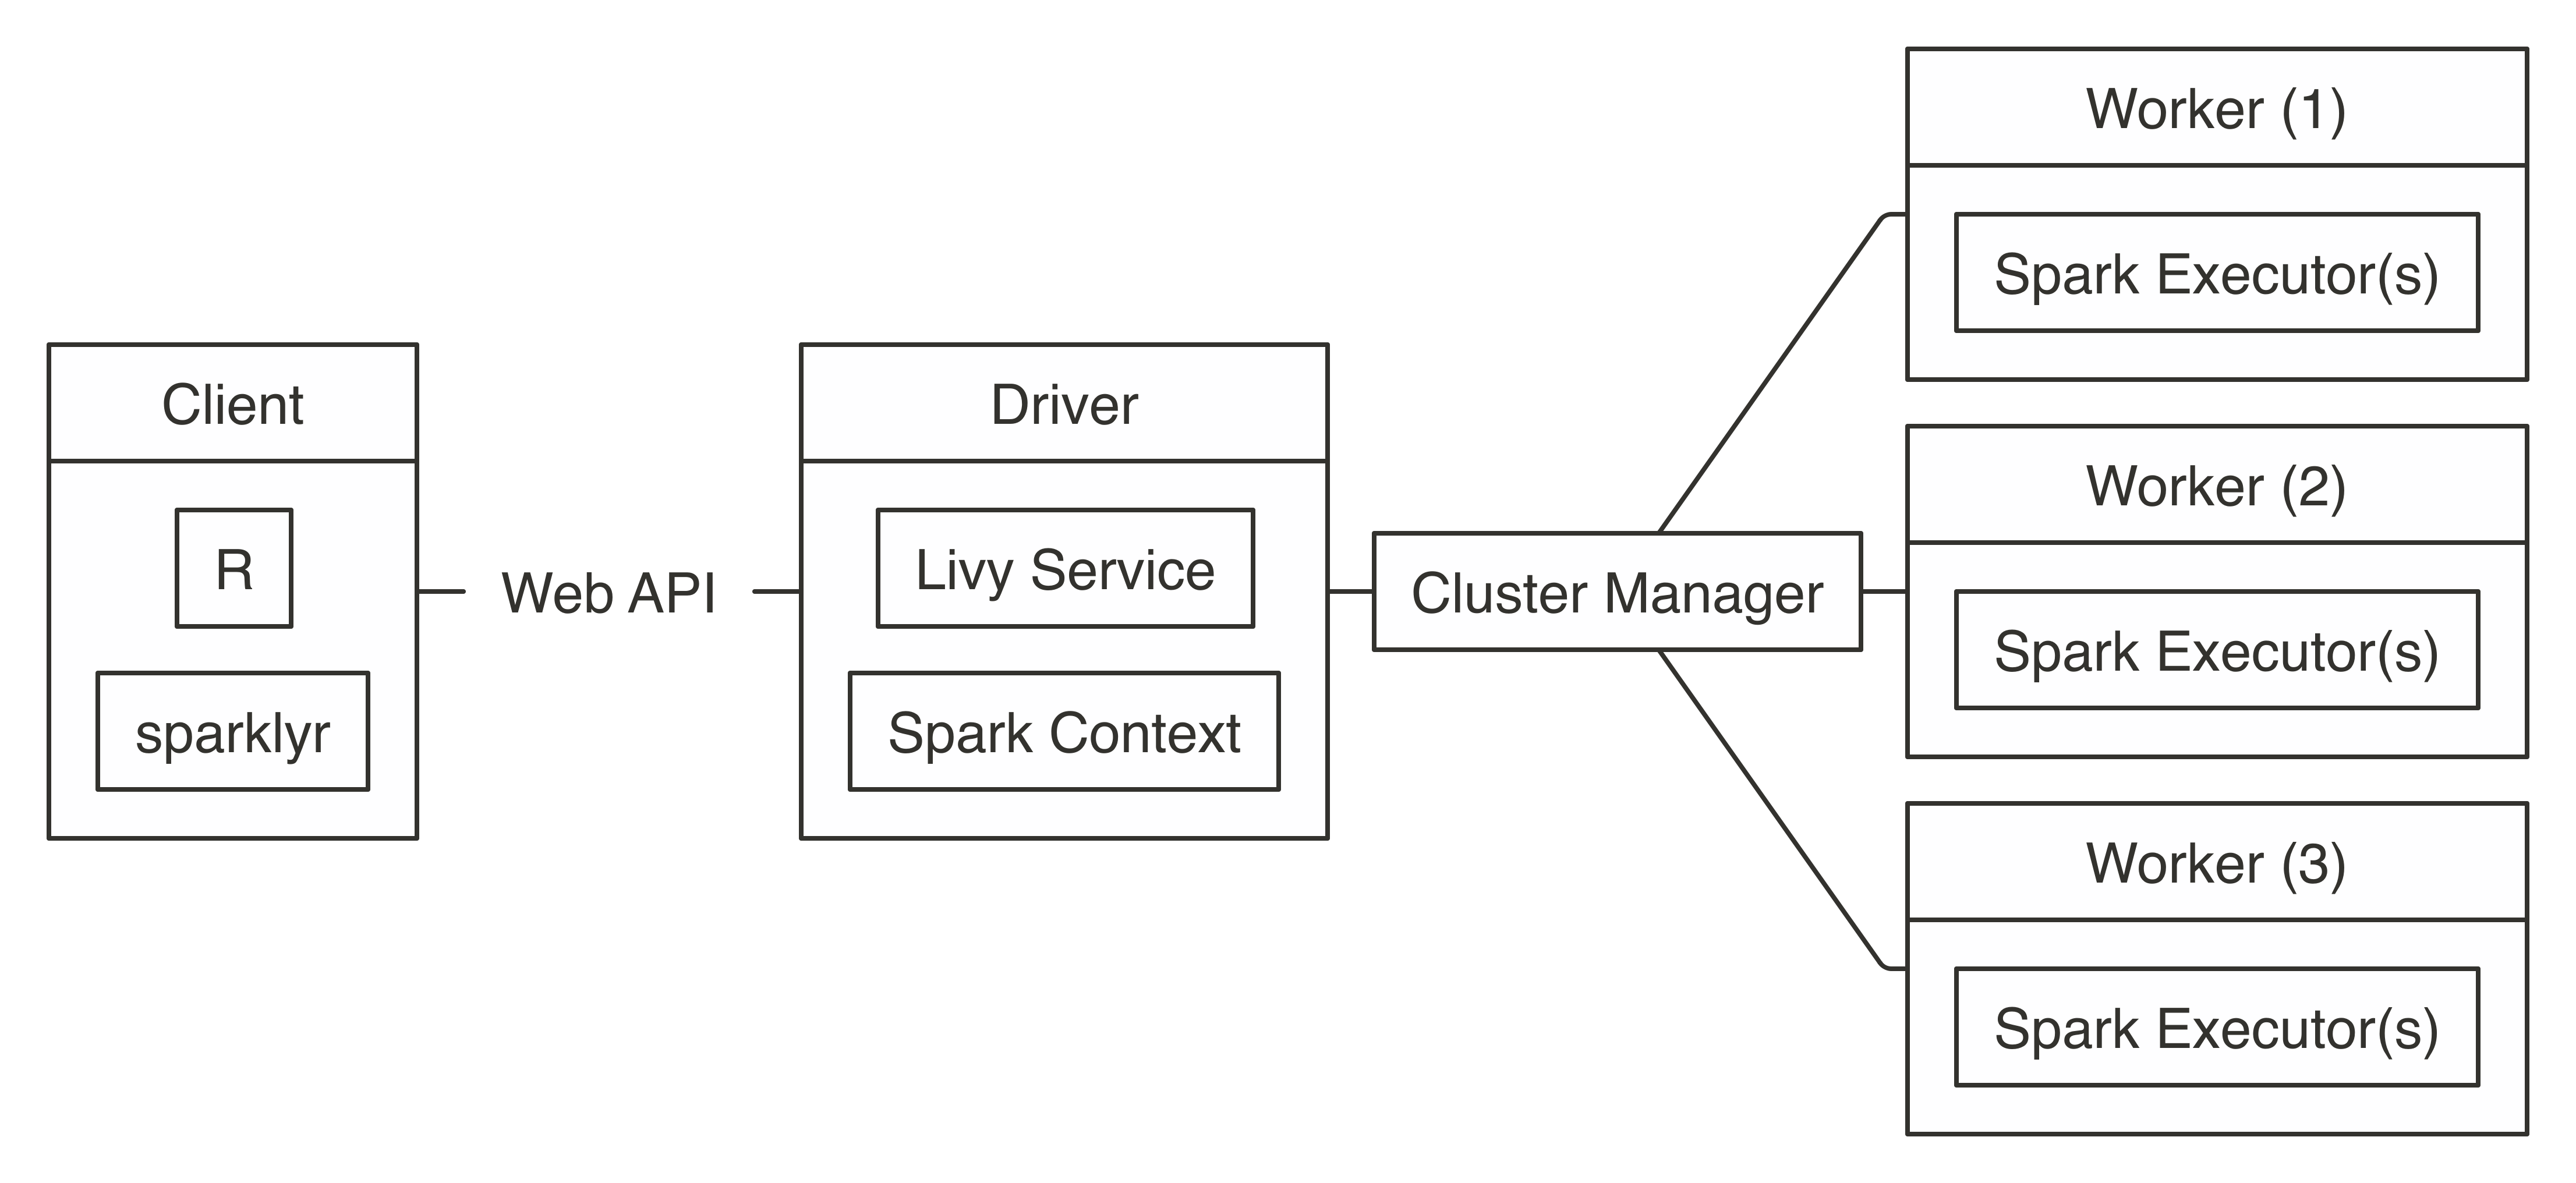 Chapter 7 Connections | Mastering Apache Spark with R